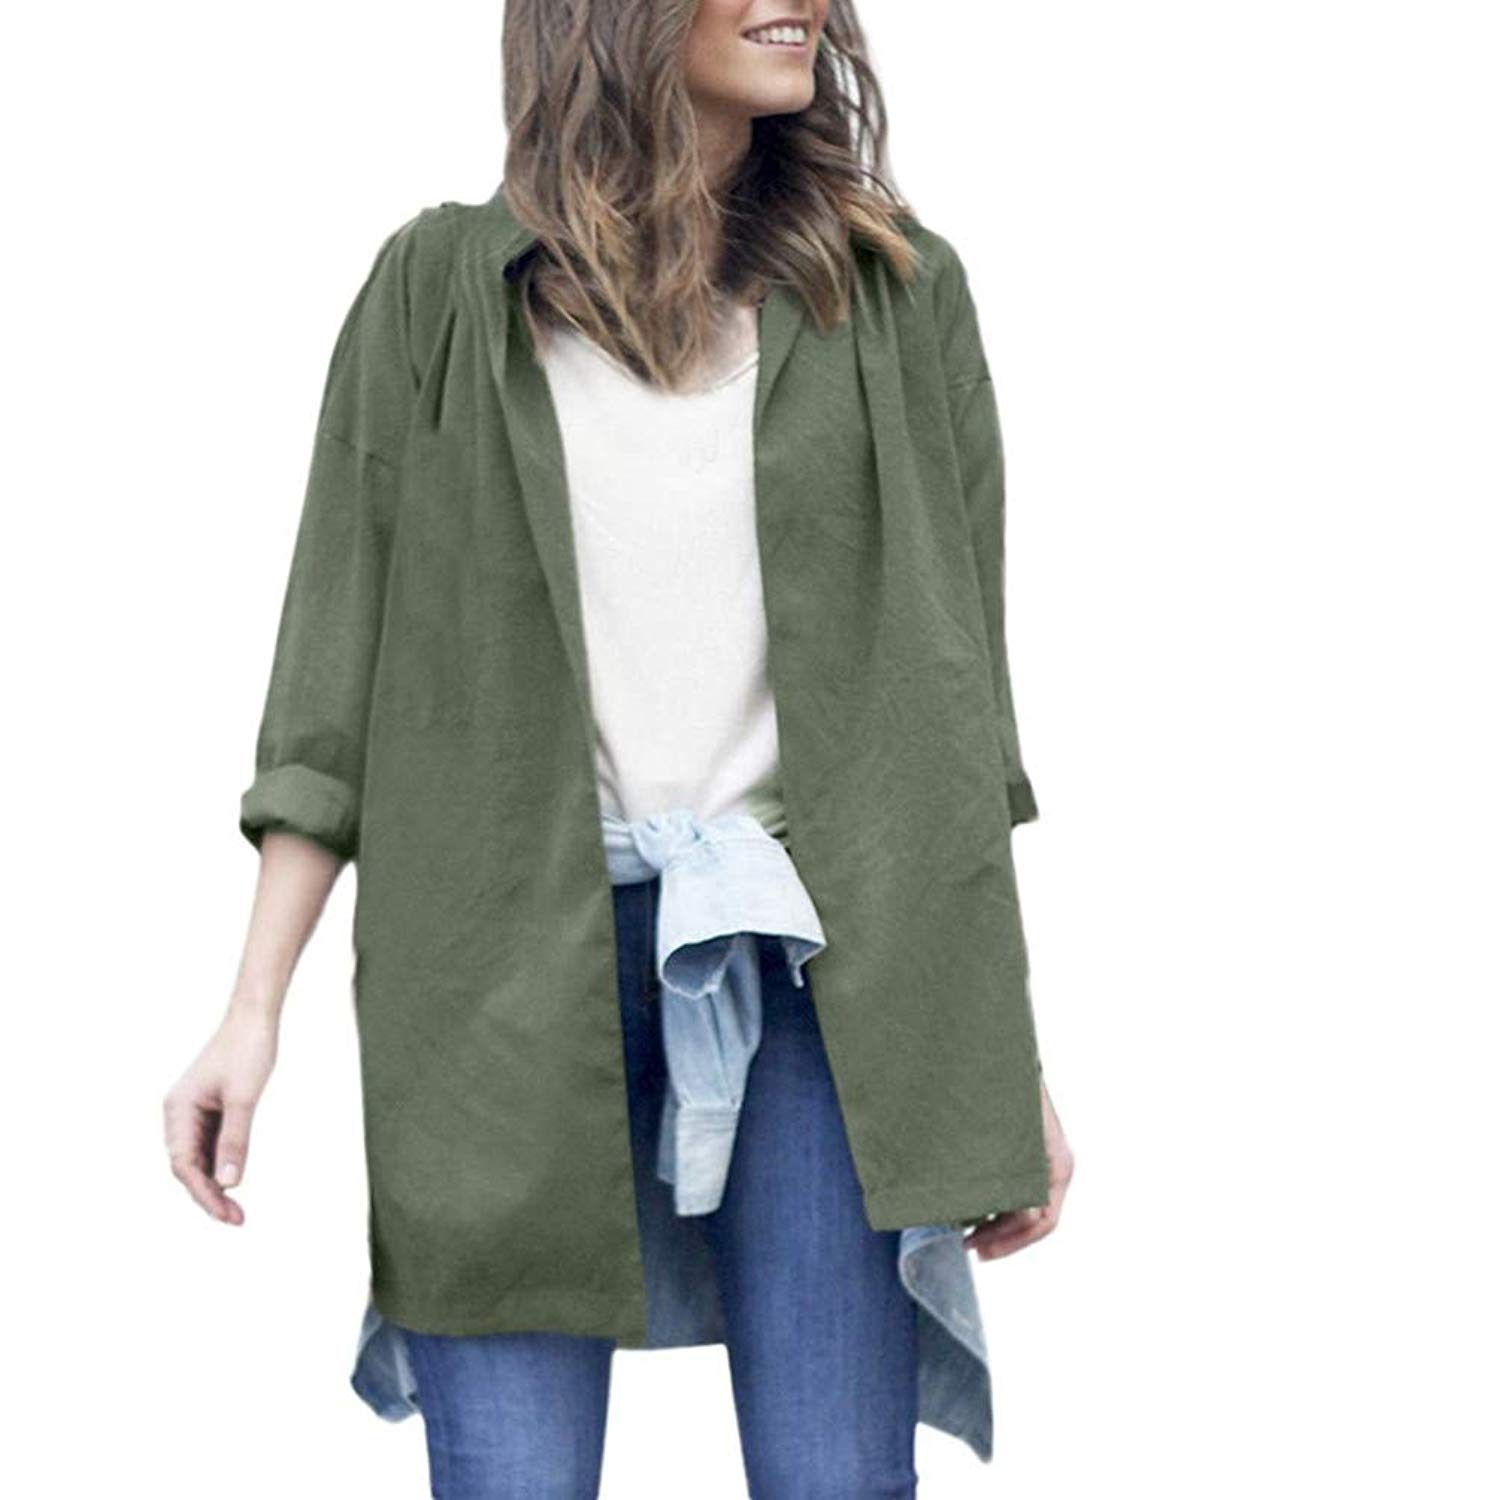 Sikye Women Coat&Jacket,Solid Casual Long Sleeve Jacket Windbreaker Parka Cardigan Thin Belt Coat